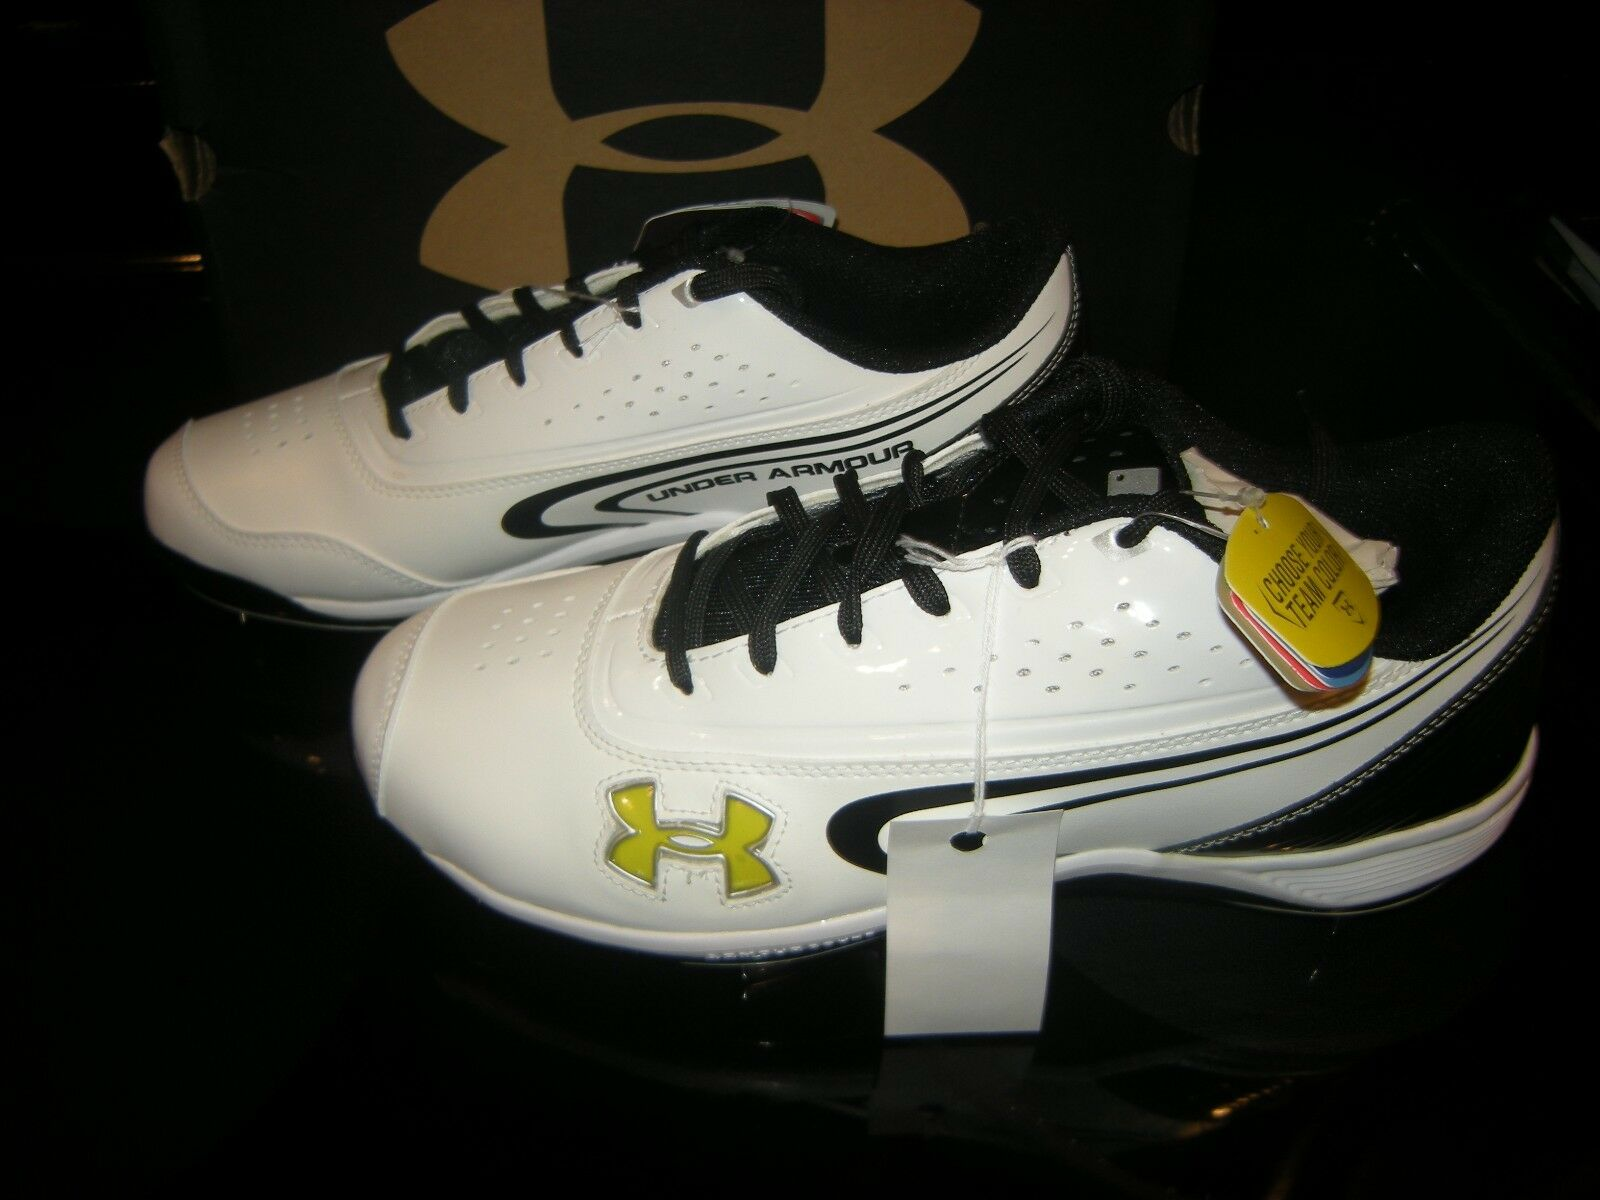 66f1fe6c77d46 New Mens Black White Under Armour Ignite III III III Low St C Metal  Baseball Cleats 11.5 f758c0